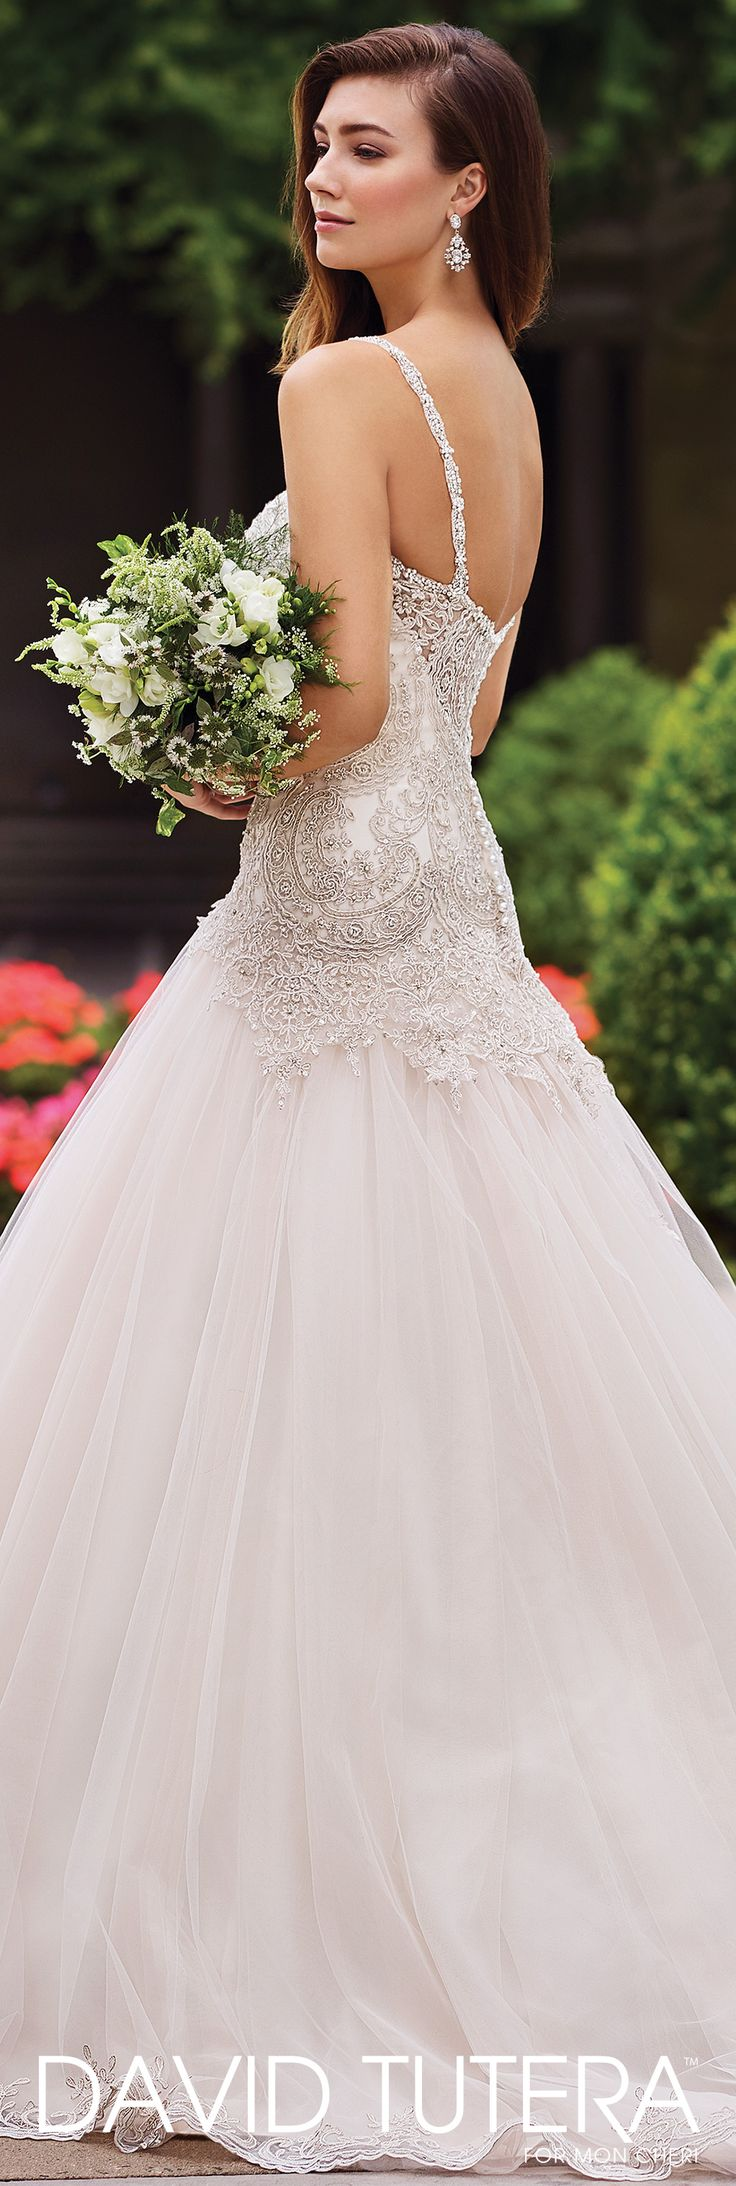 David Tutera for Mon Cheri Spring 2017 Collection - Style No. 117279 Carmelina - sleeveless metallic lace and tulle A-line wedding dress in Ivory/Stone